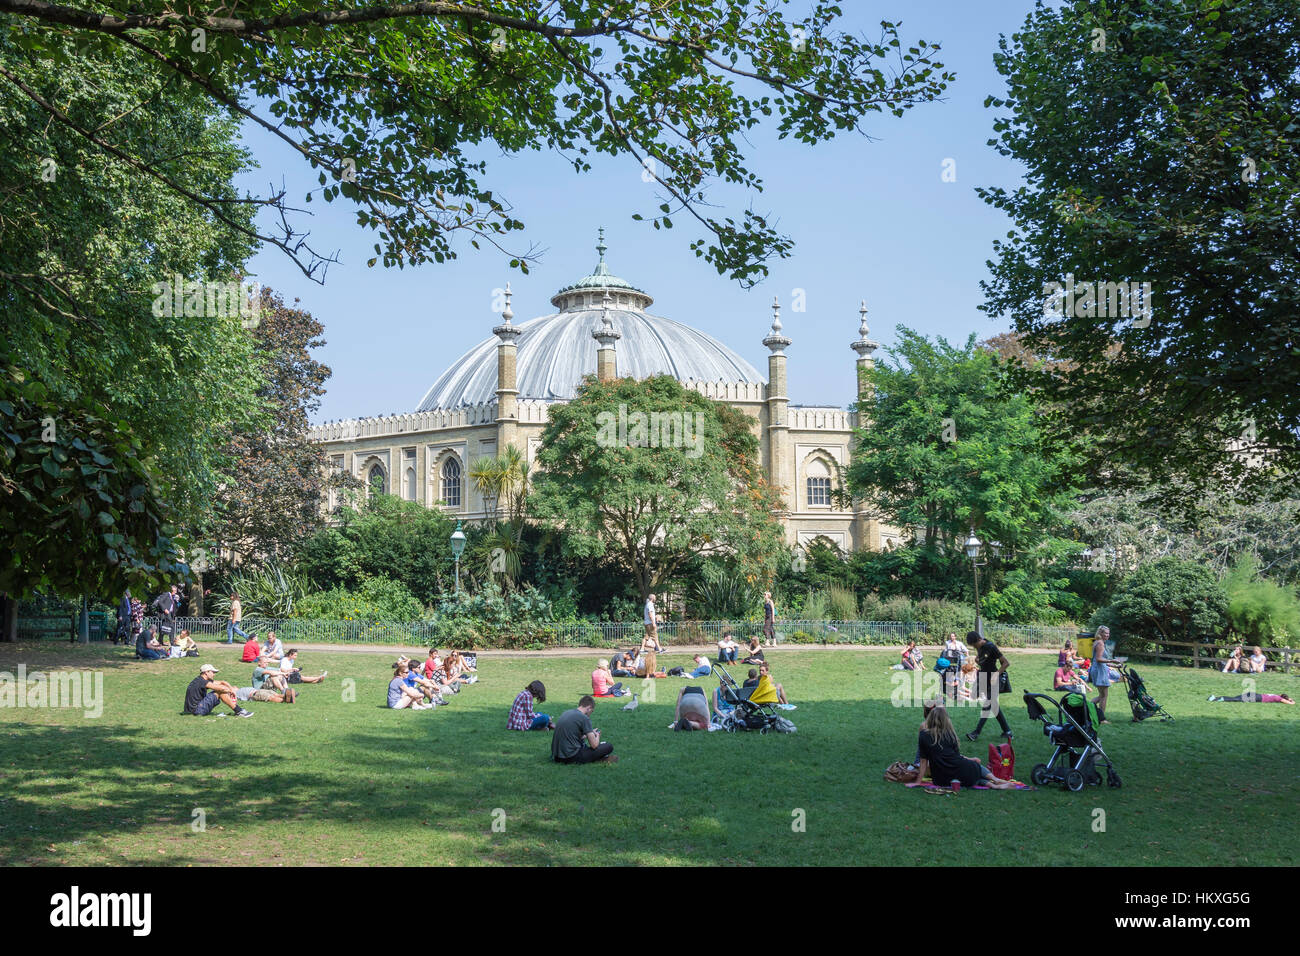 Royal Pavilion Gardens and Brighton Museum & Art Gallery, Brighton ...